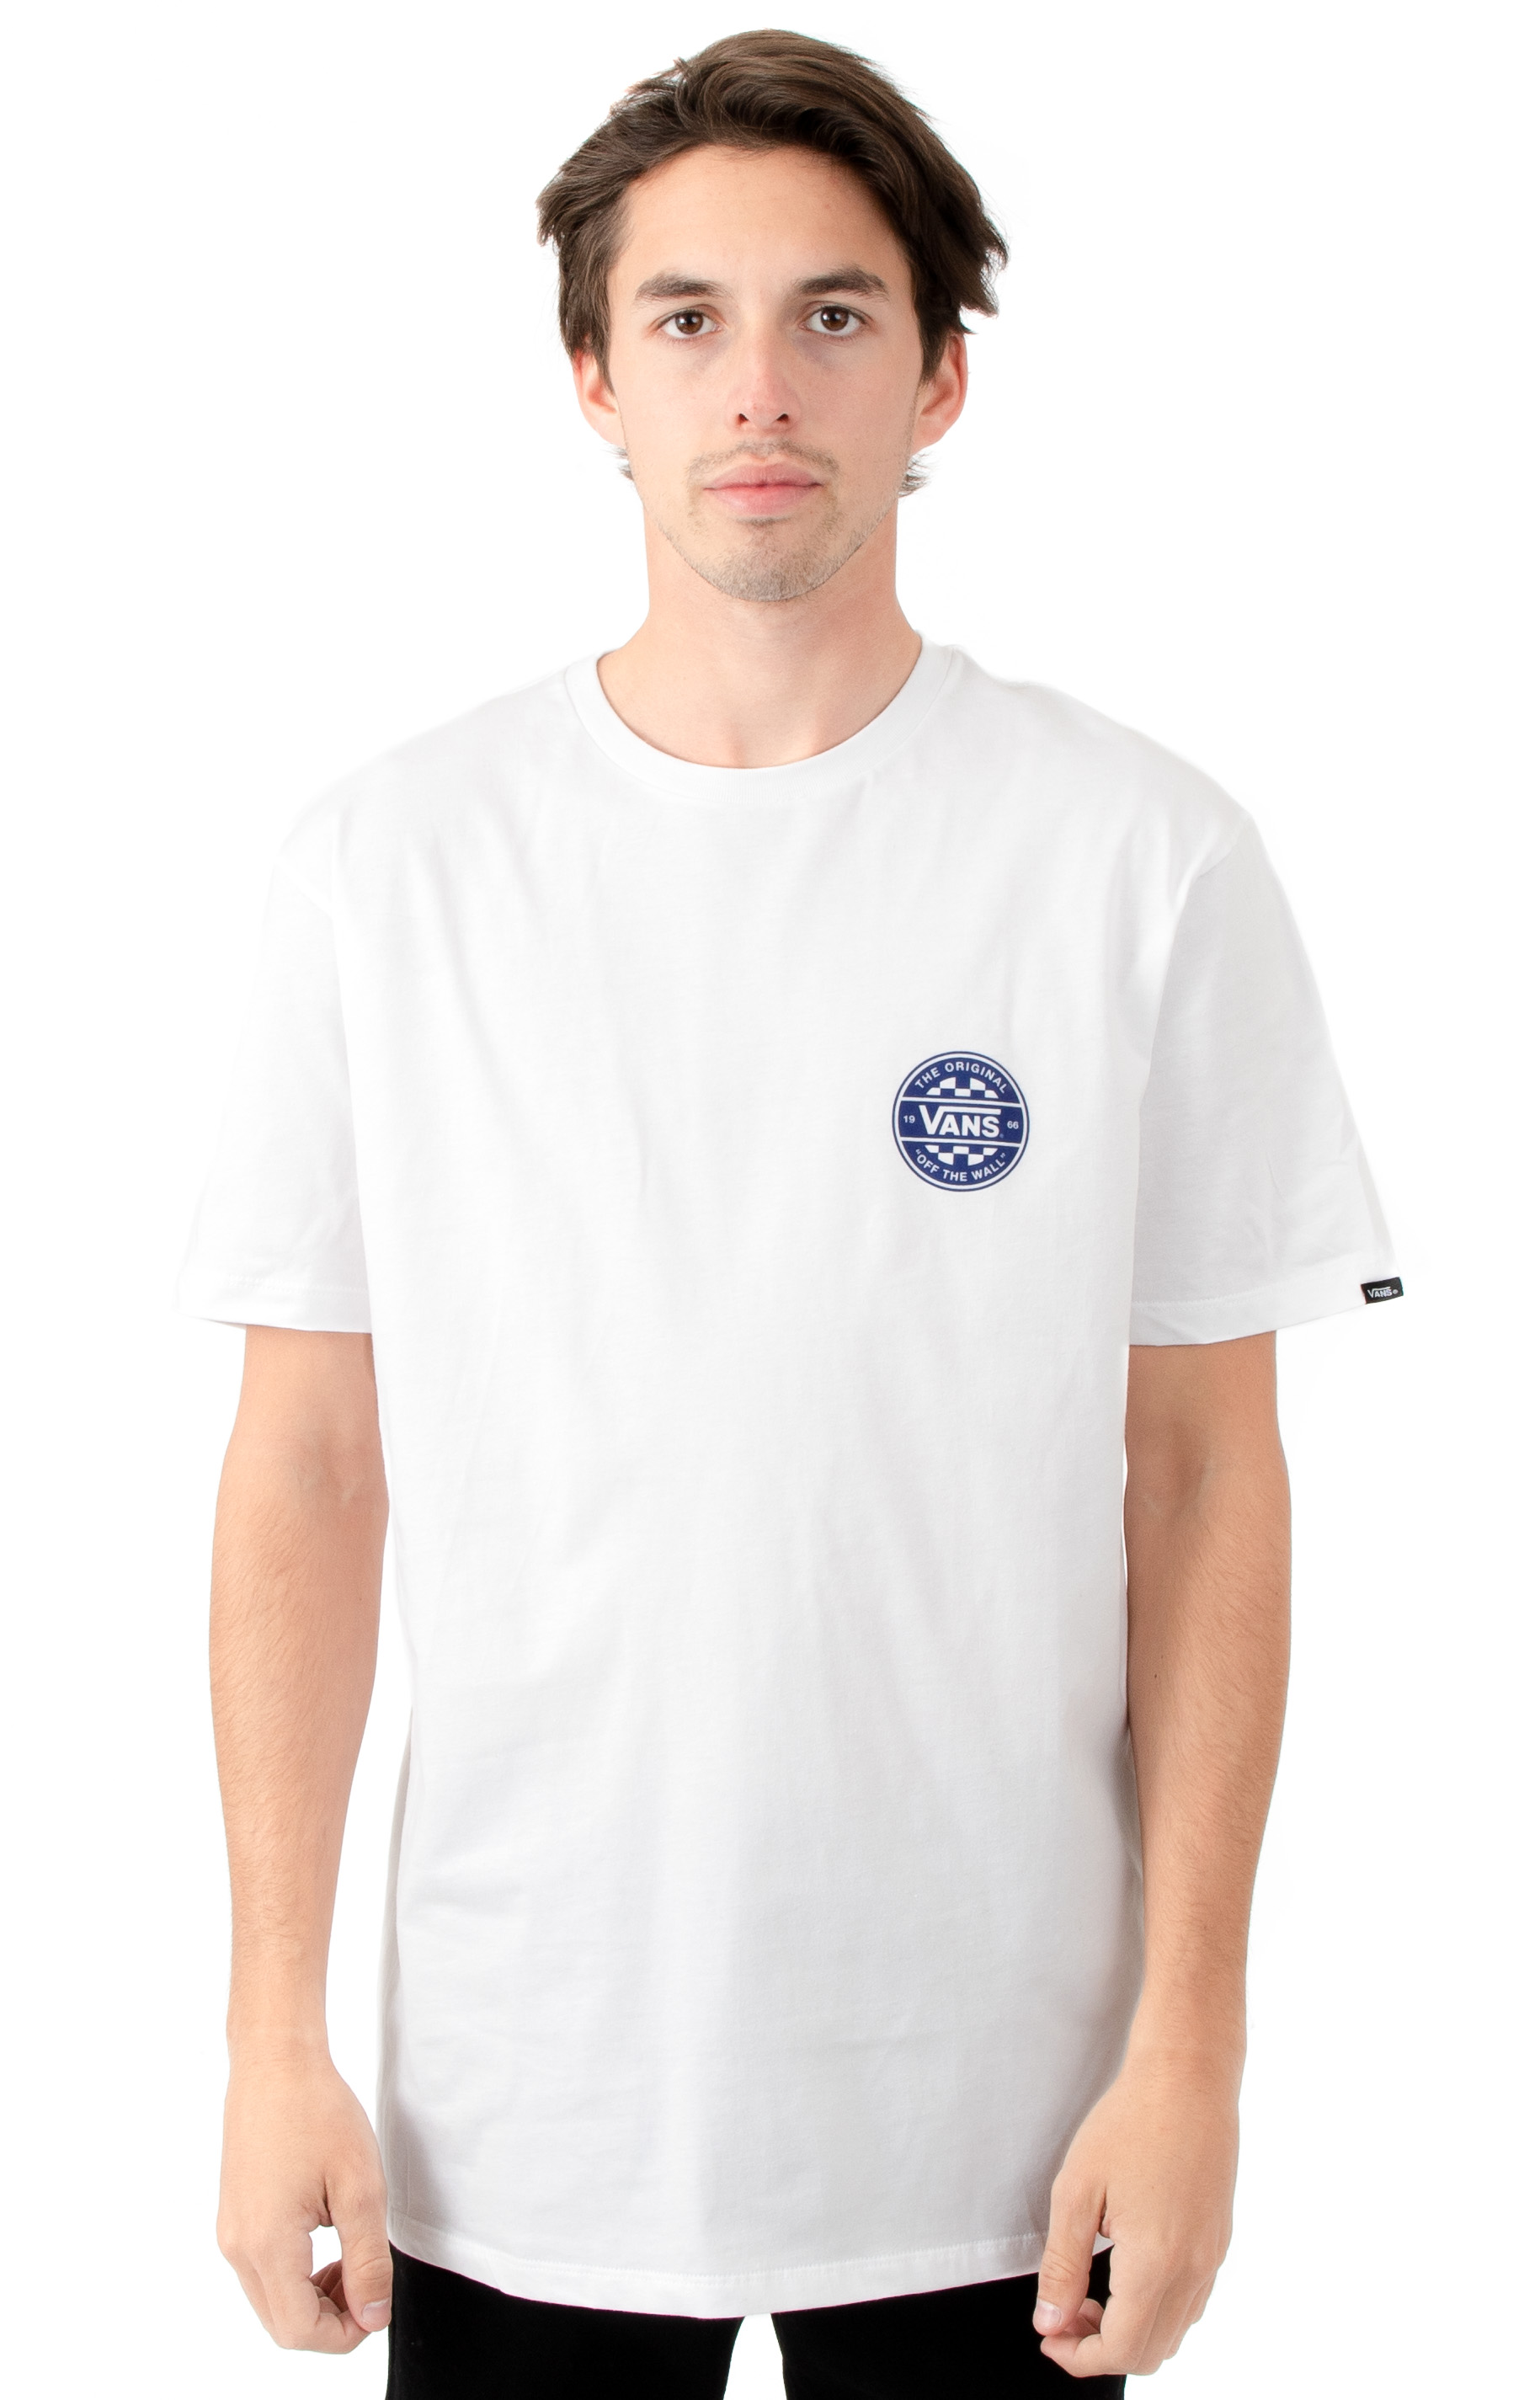 Checker Co. T-Shirt - White